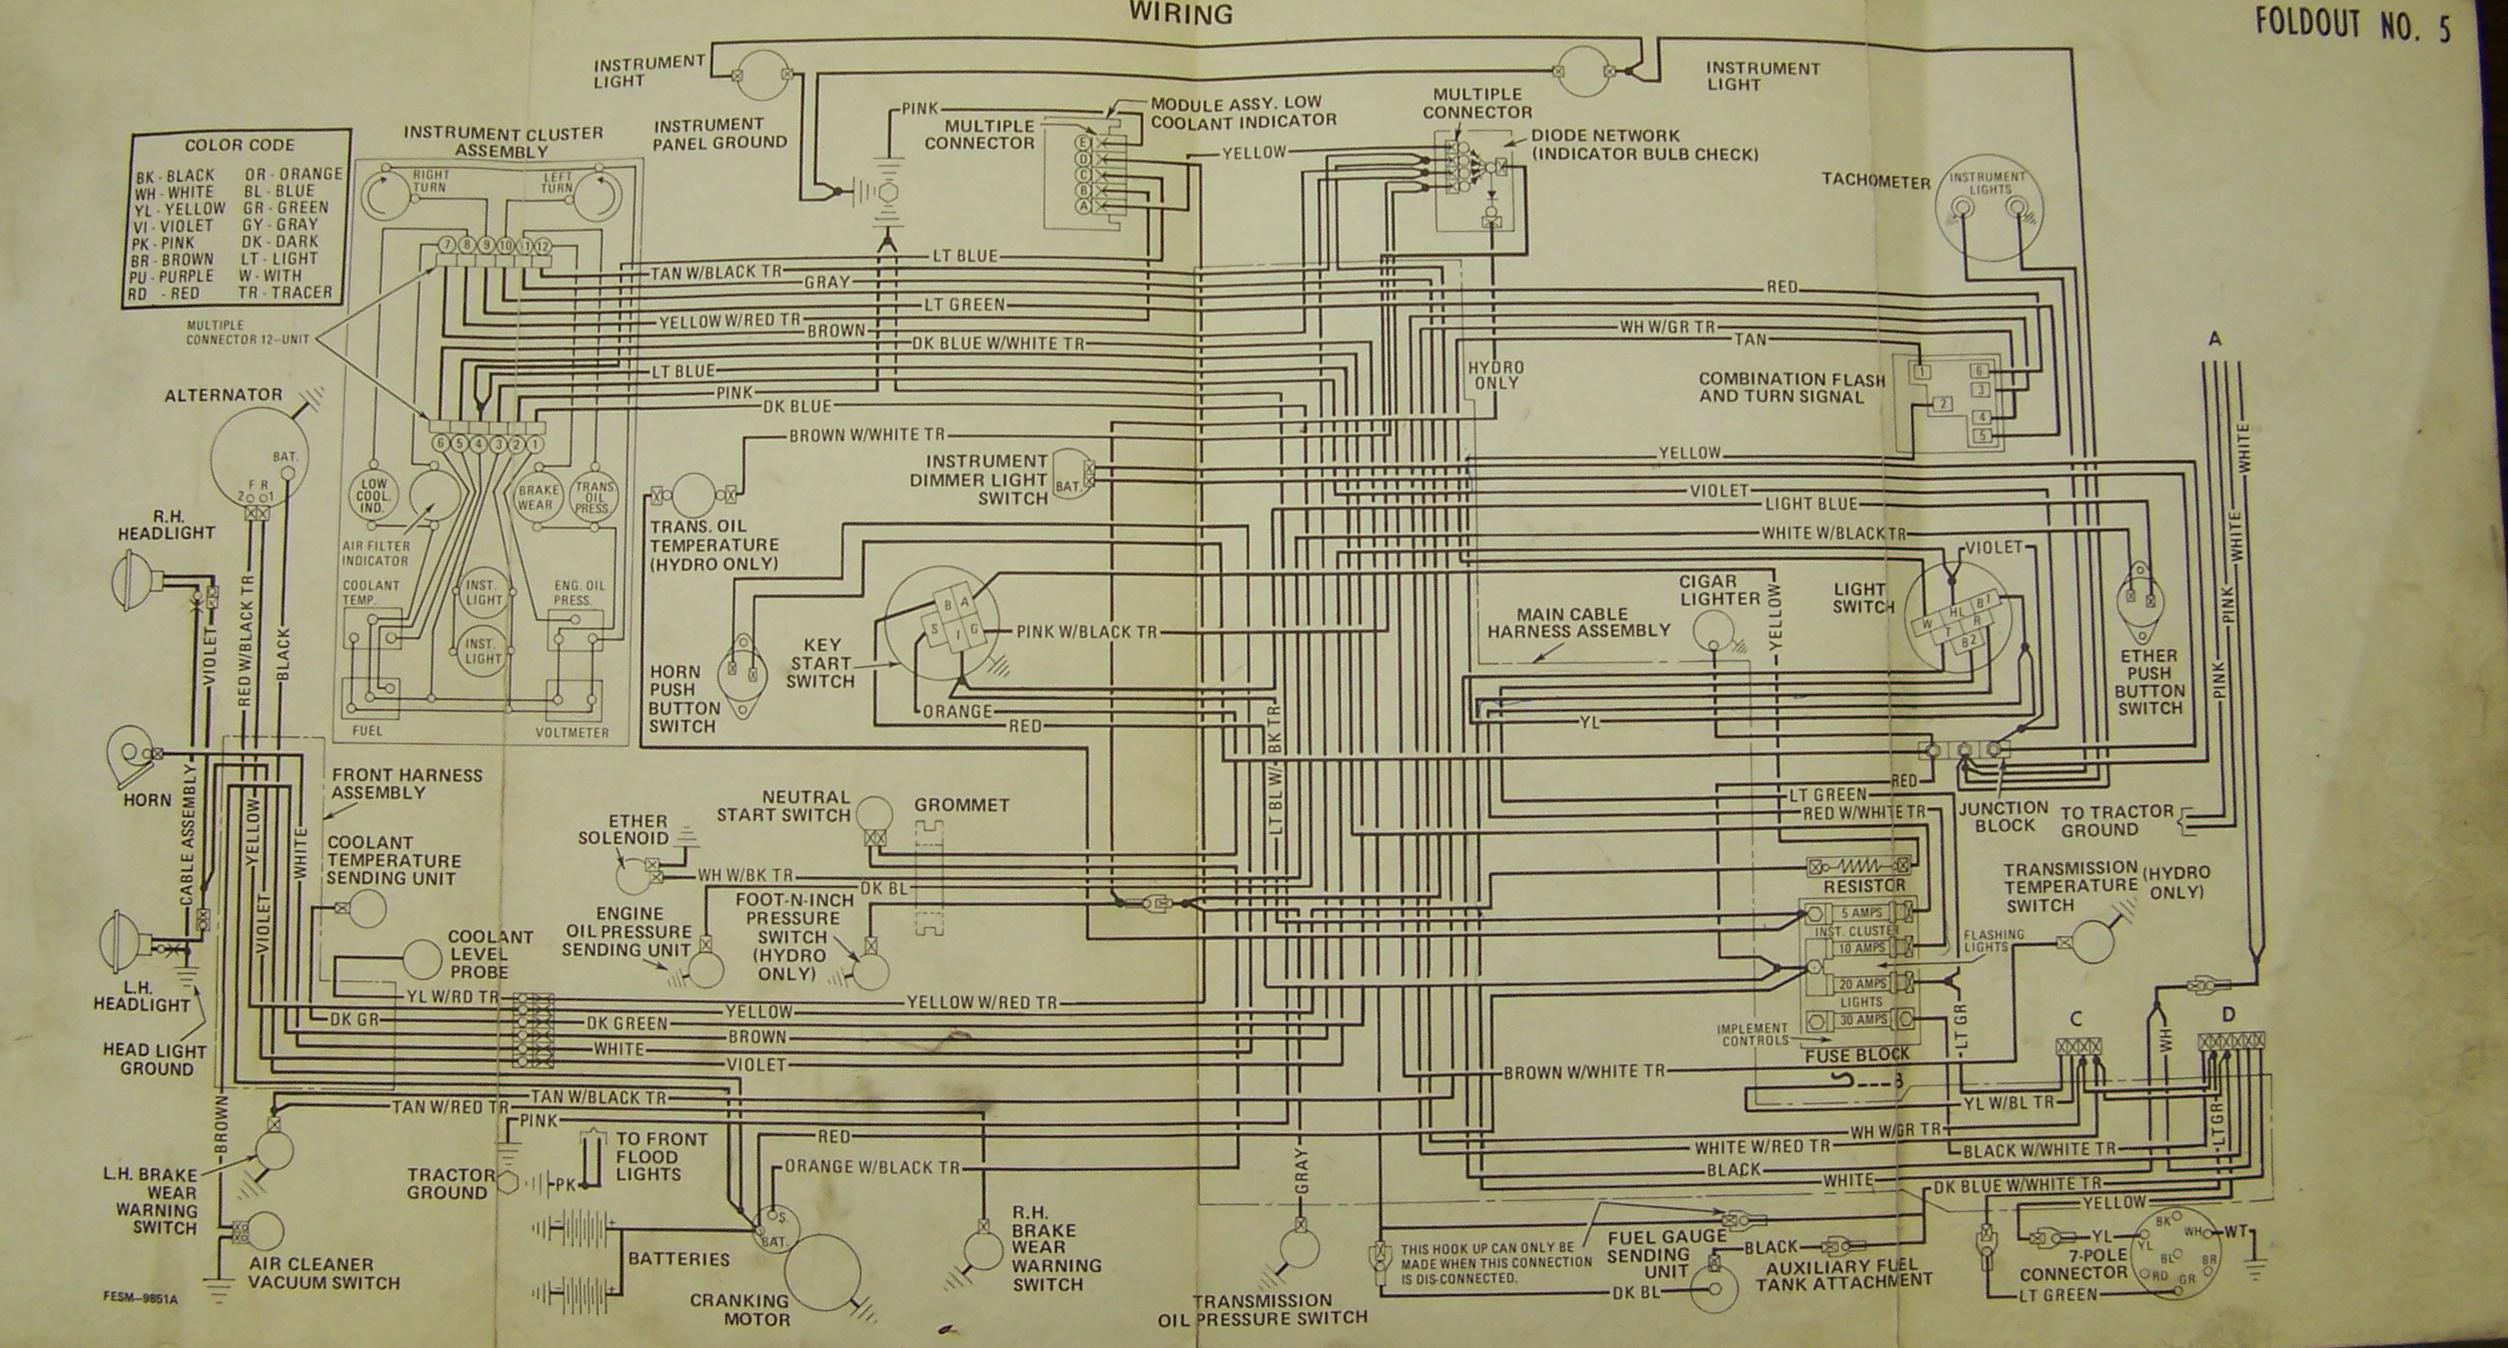 86series5 ih 574 wiring diagram case 430 tractor wiring diagram \u2022 wiring International 4300 Wiring Diagram Schematics at mr168.co